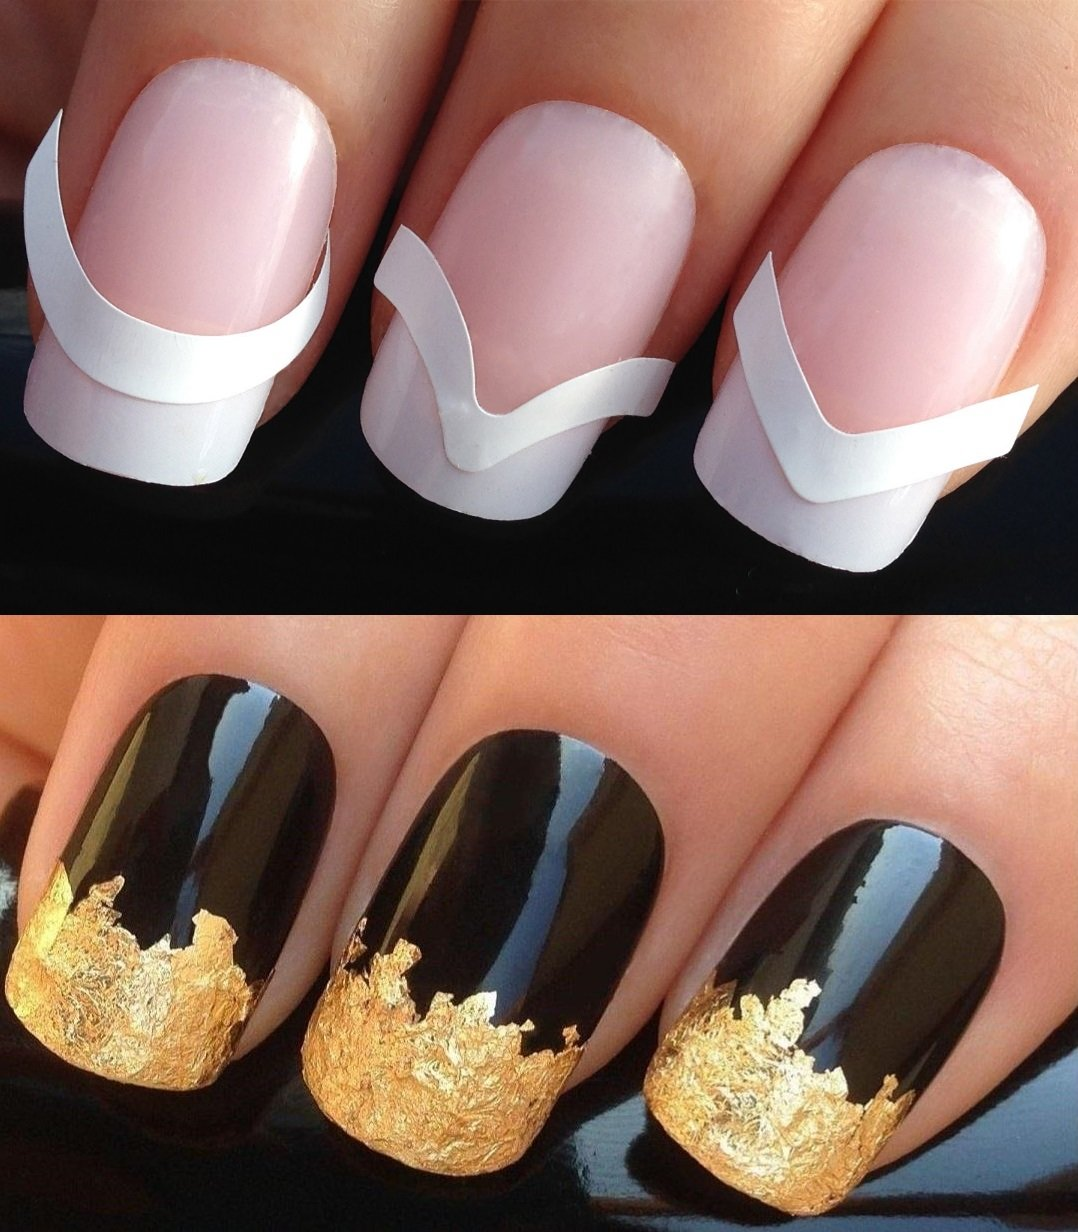 NAIL ART SET #172. x48 FRENCH MANICURE TIP GUIDES & A LARGE GOLD ...